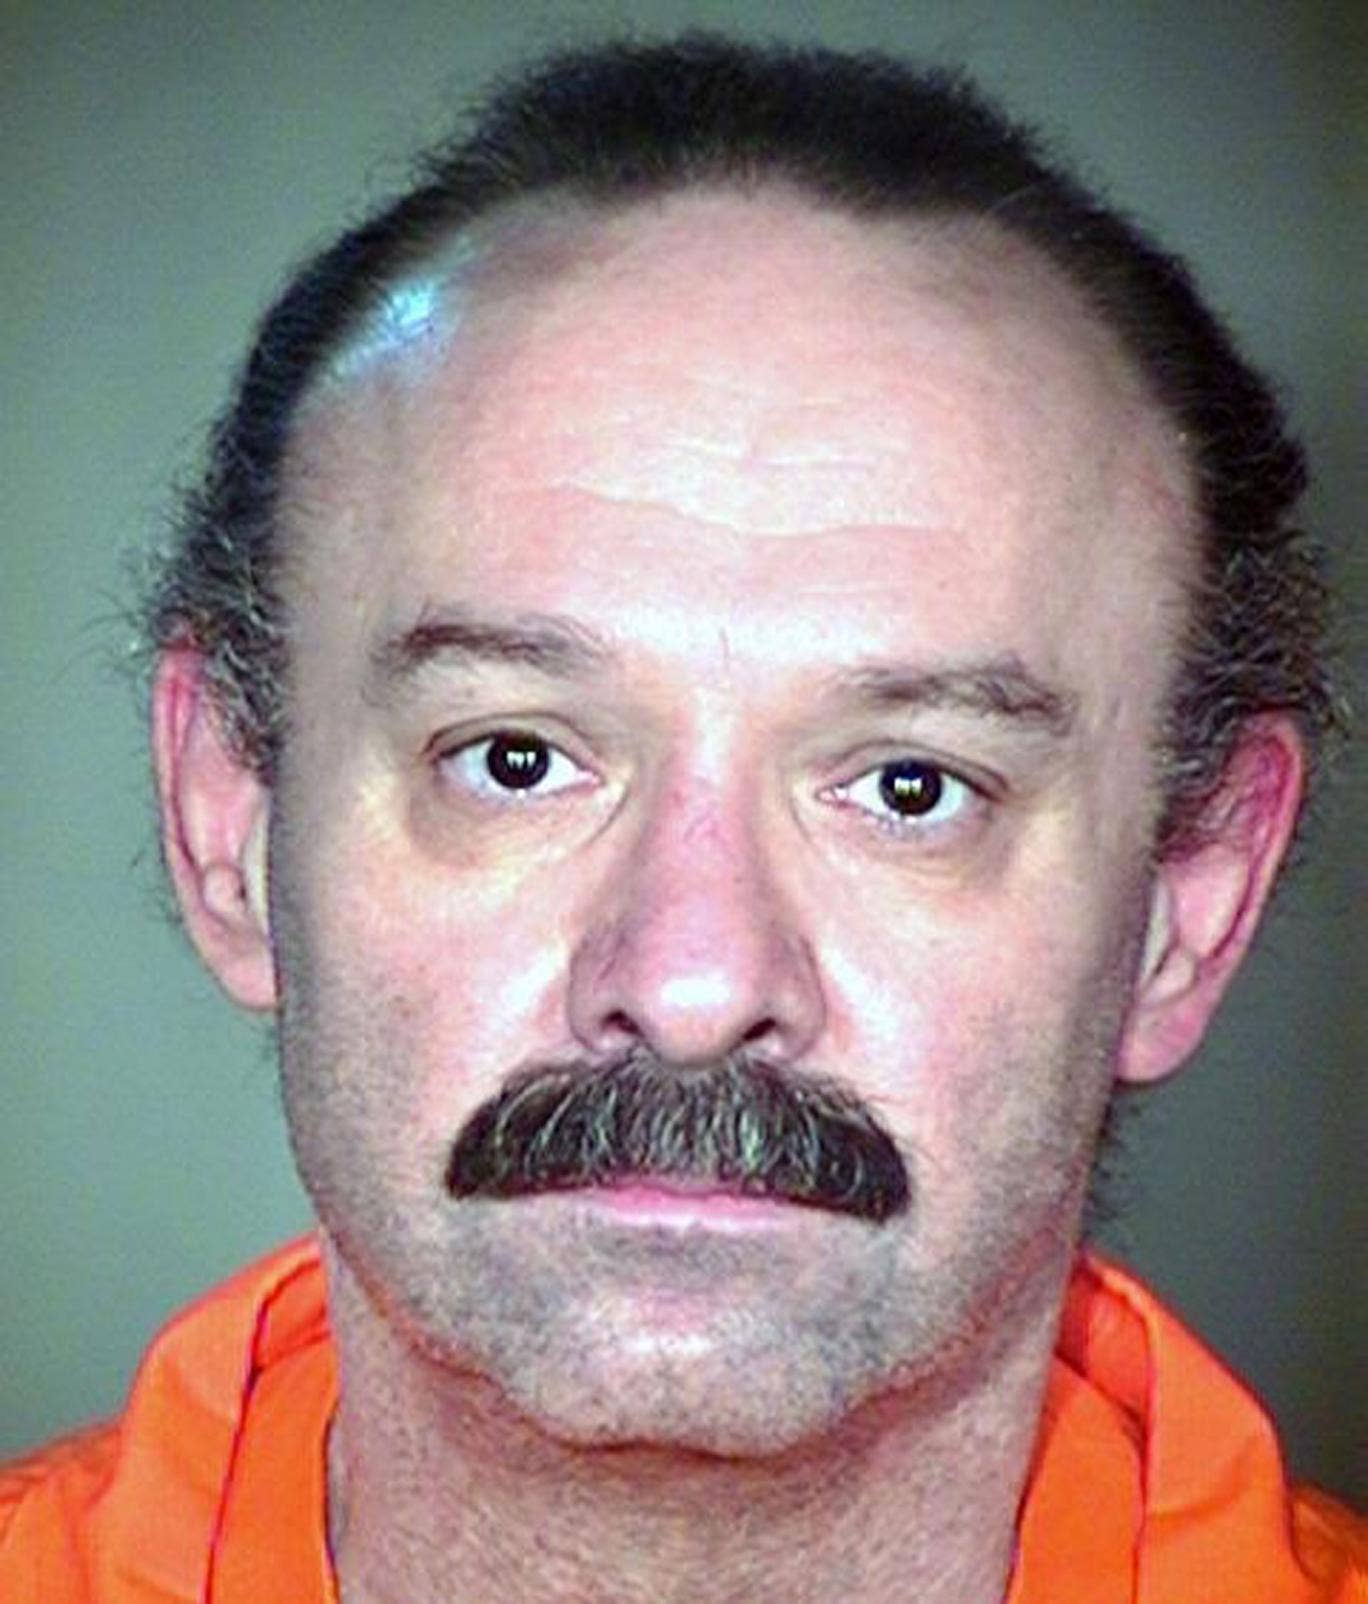 An undated Arizona Department of Corrections photo showing Joseph Rudolph Wood, who was sentenced to death for the killing in 1989 of his ex-girlfriend and her father